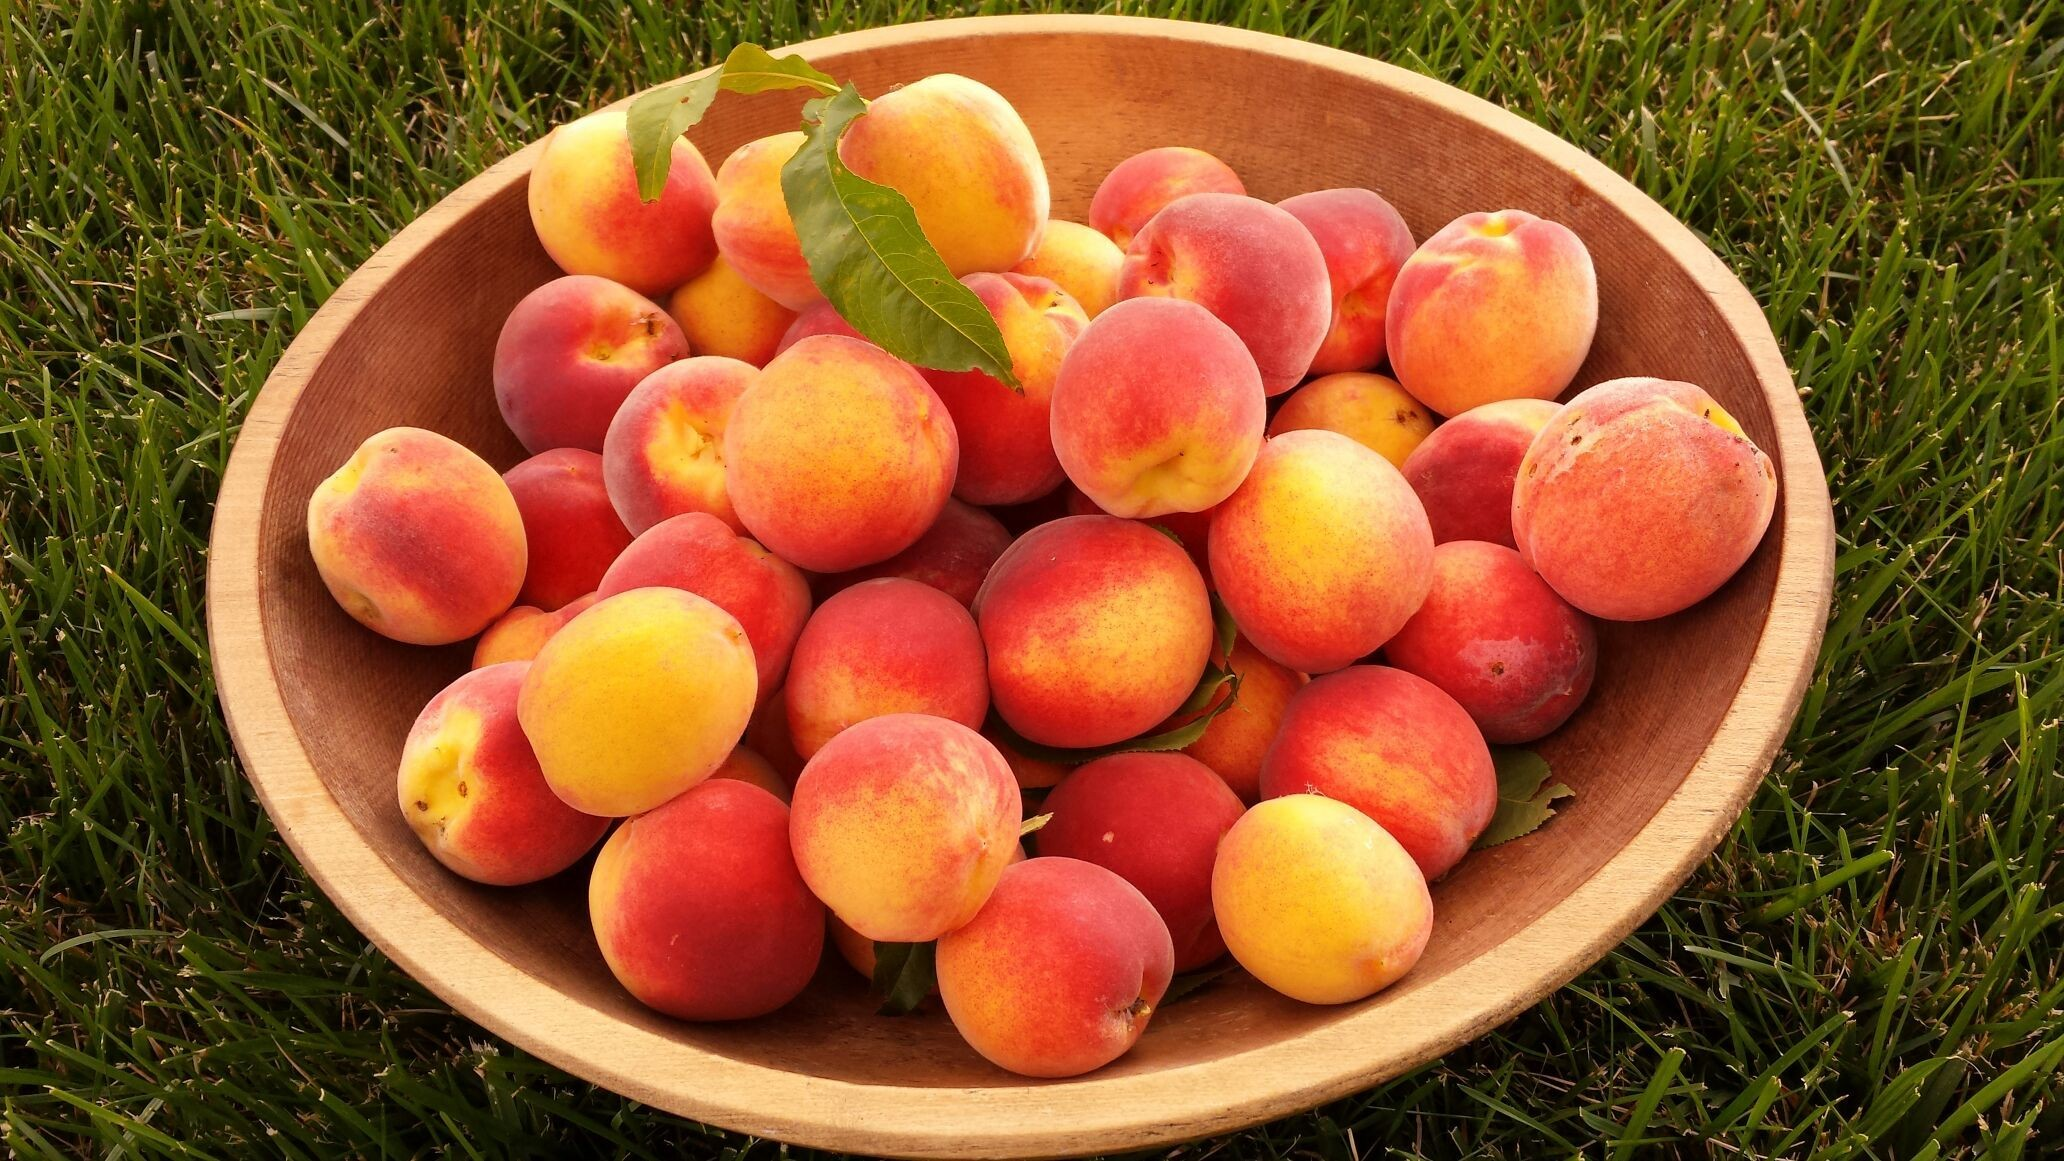 The peach harvest this year! The peach tree was planted just last year. #growyourownfood